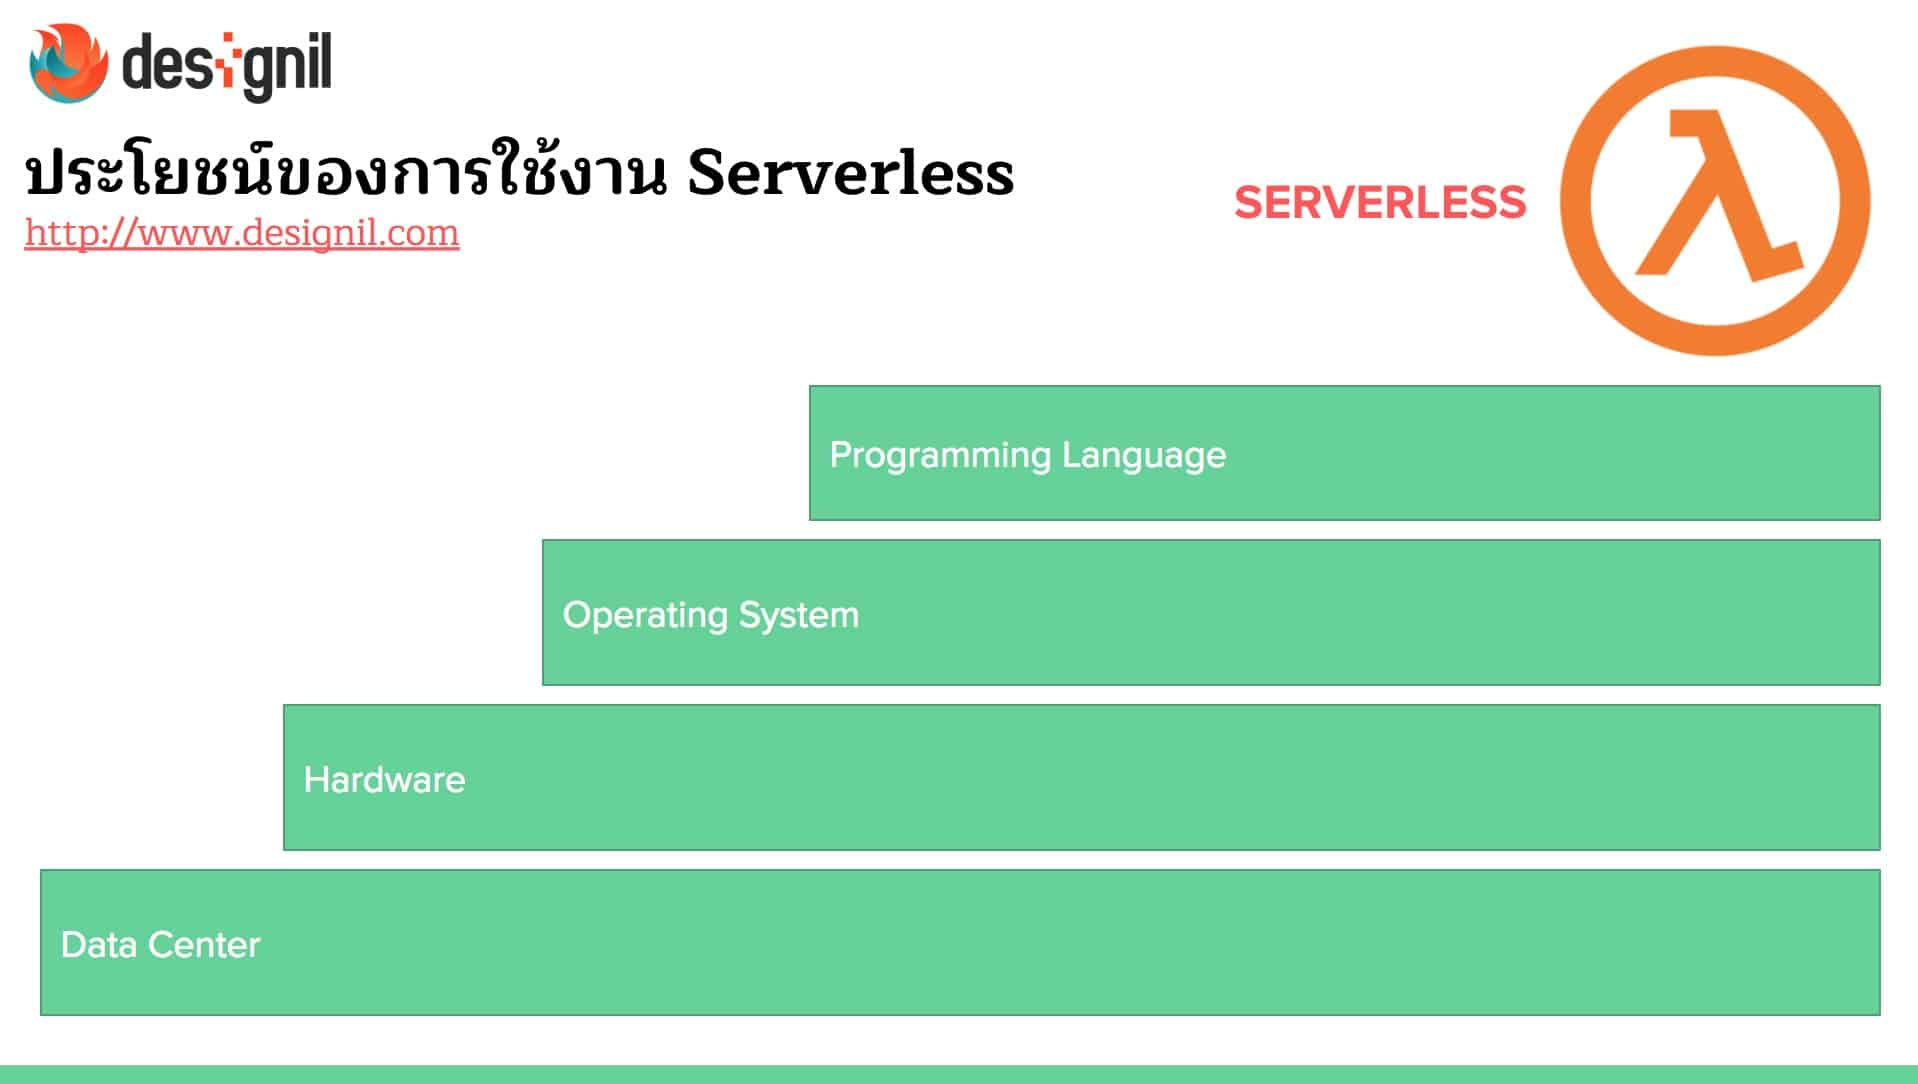 serverless-benefits.jpg